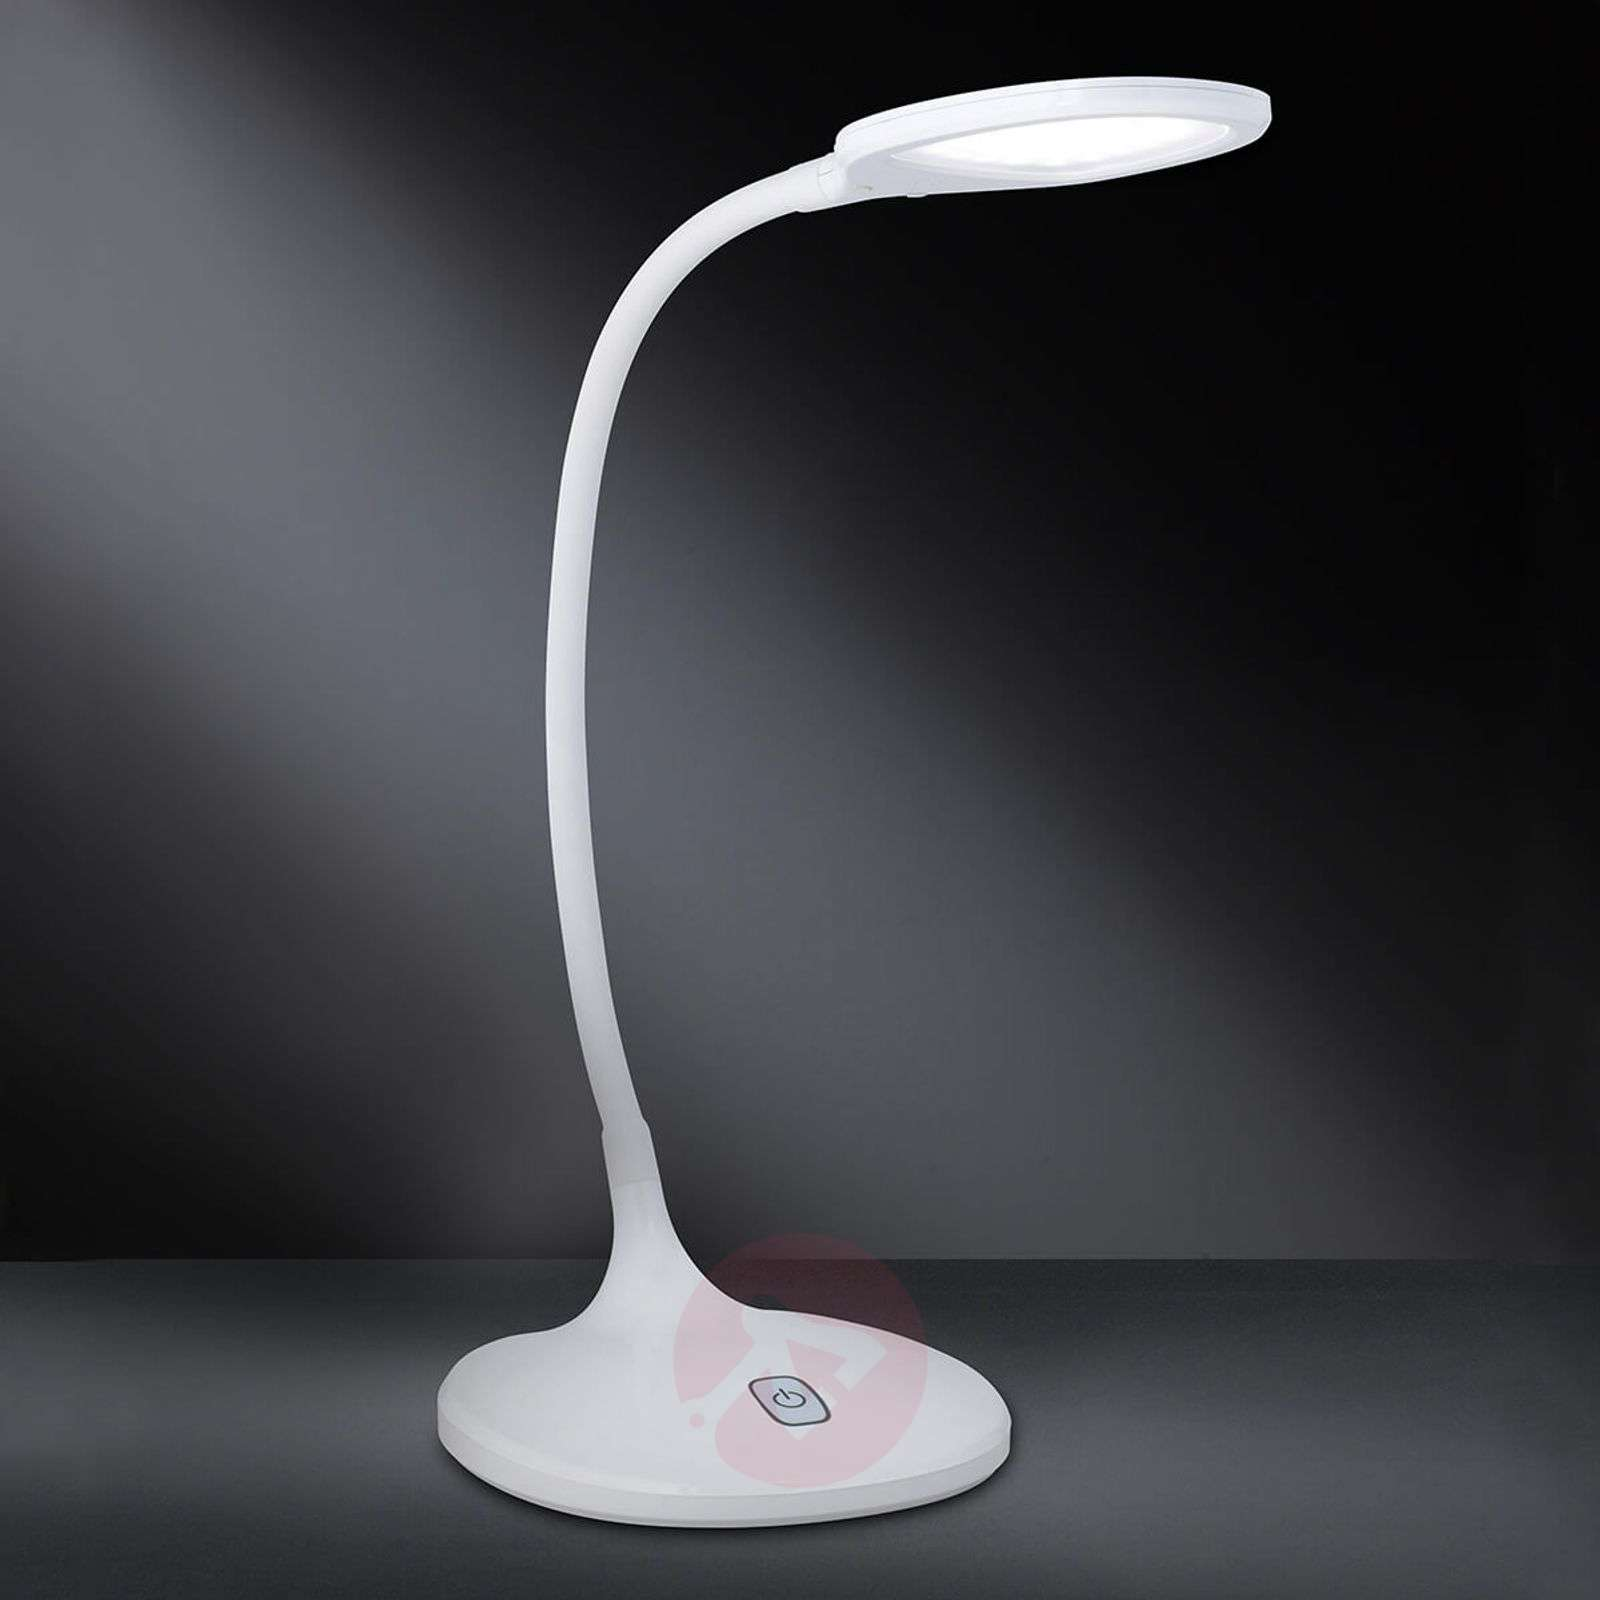 Lampe de bureau LED dimmable Yava-9652056X-01